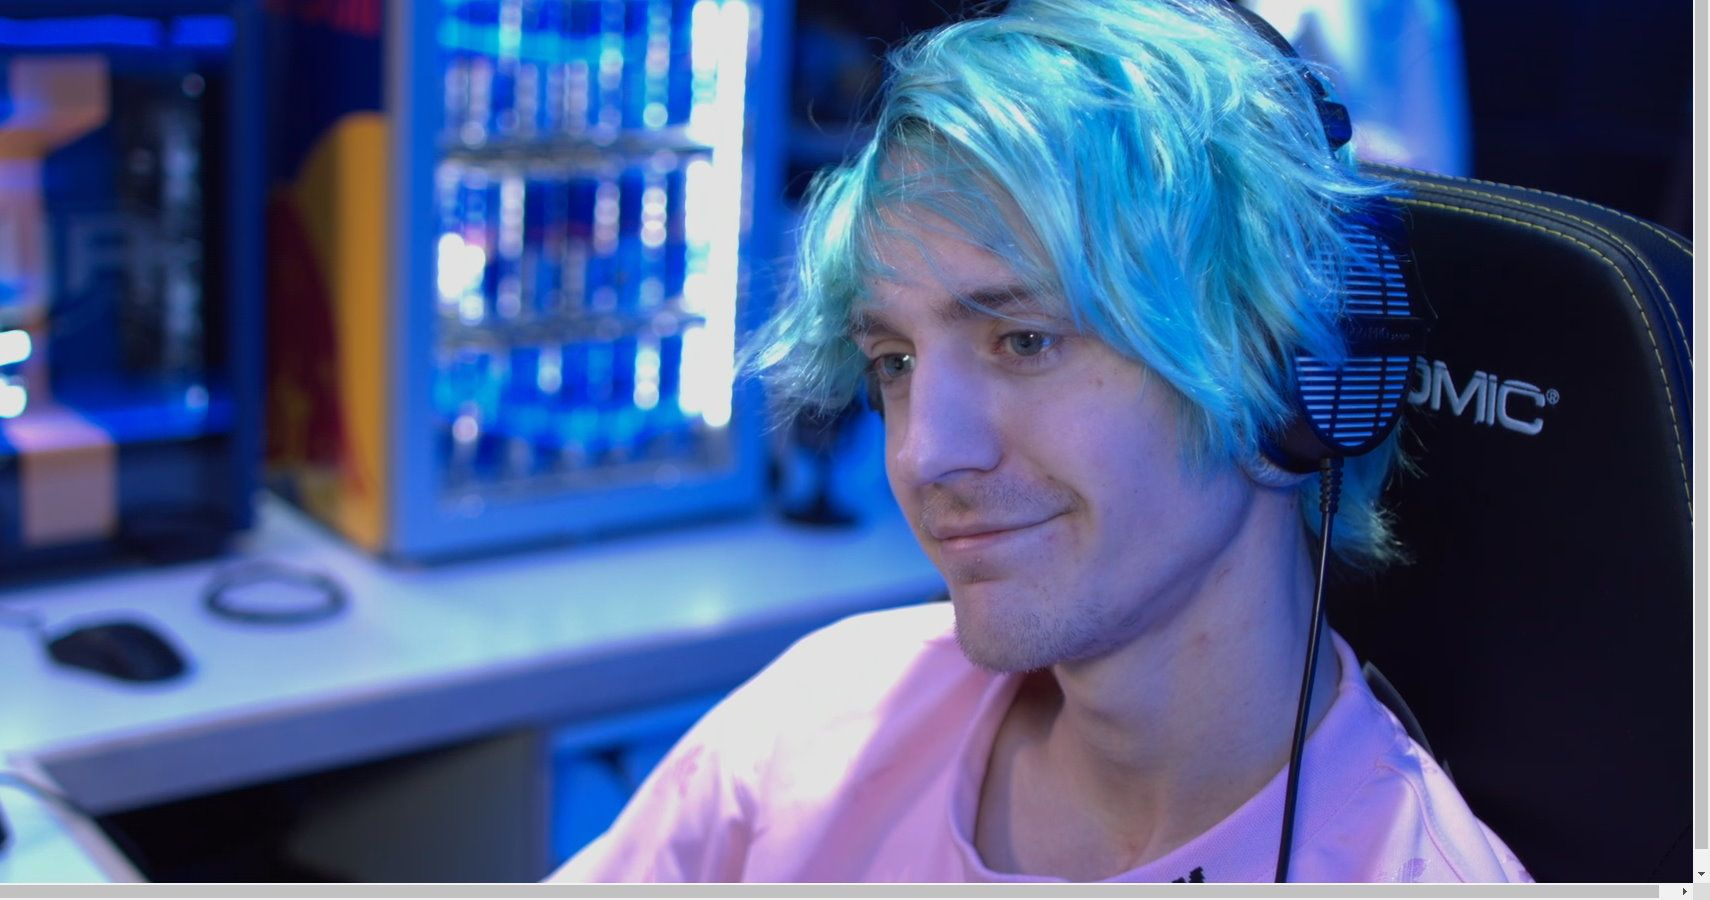 Ninja Vows To Quit Fortnite After Stream Sniper Sends Him Into Expletive-Filled Rant